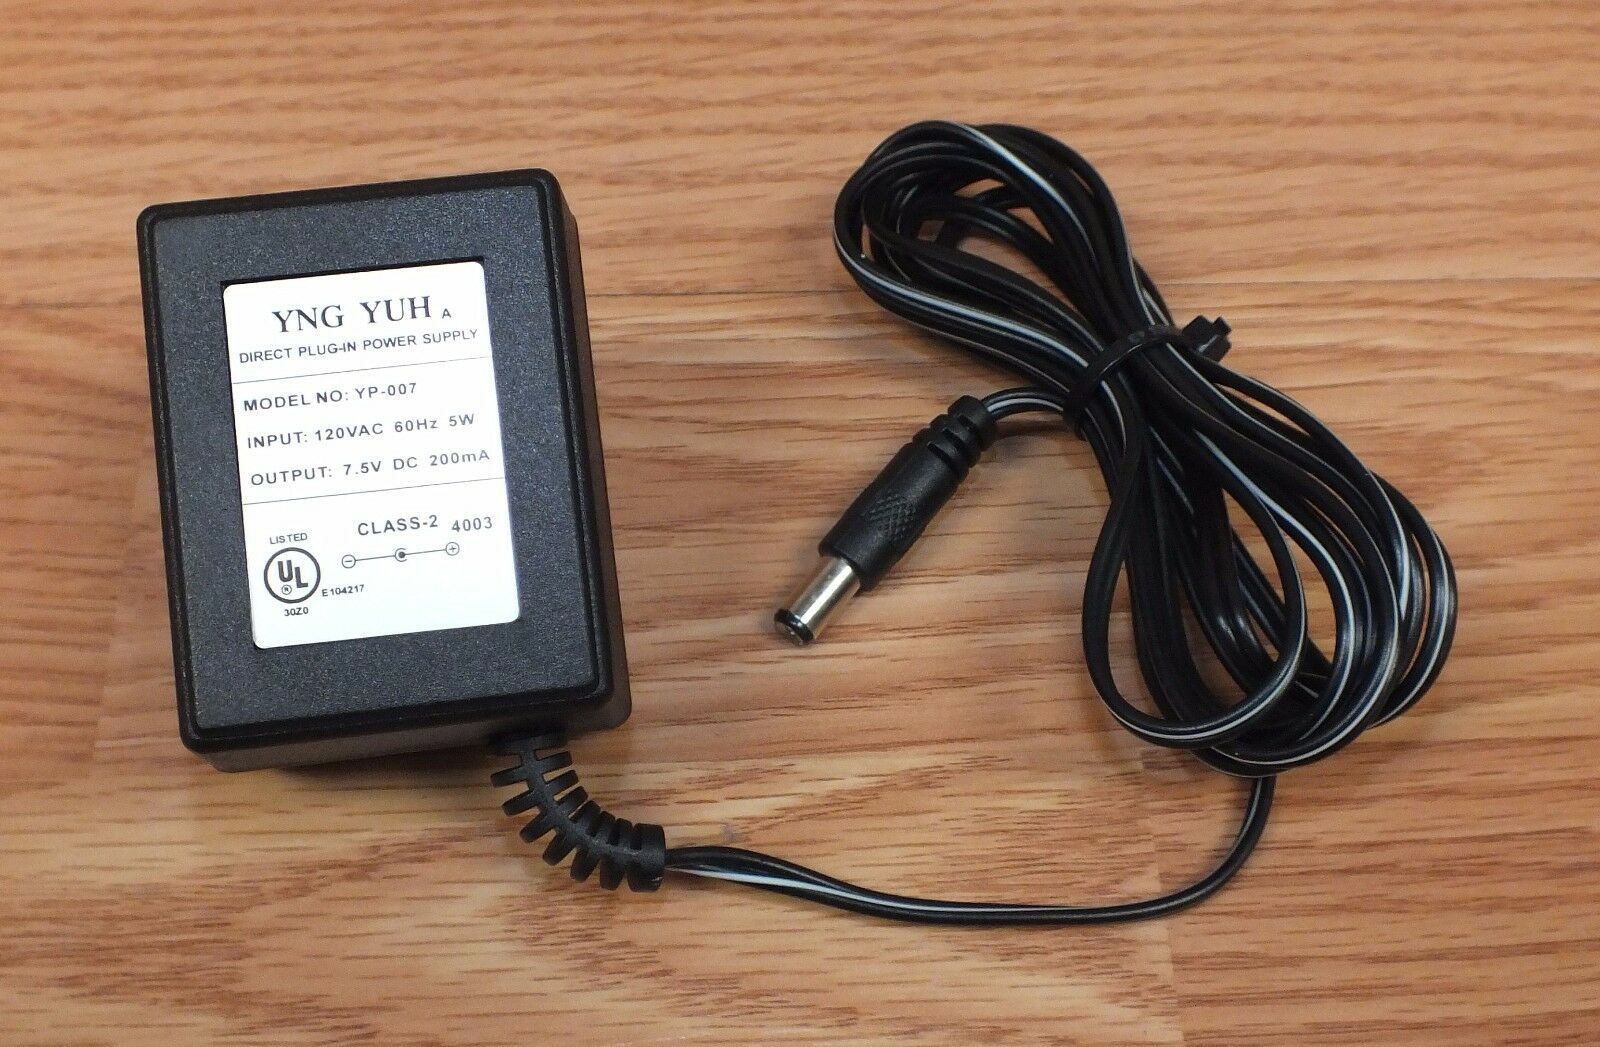 YNG YUH (YP-007) 7.5V 5W 60Hz 200mA AC Adapter Power Supply Charger **READ**